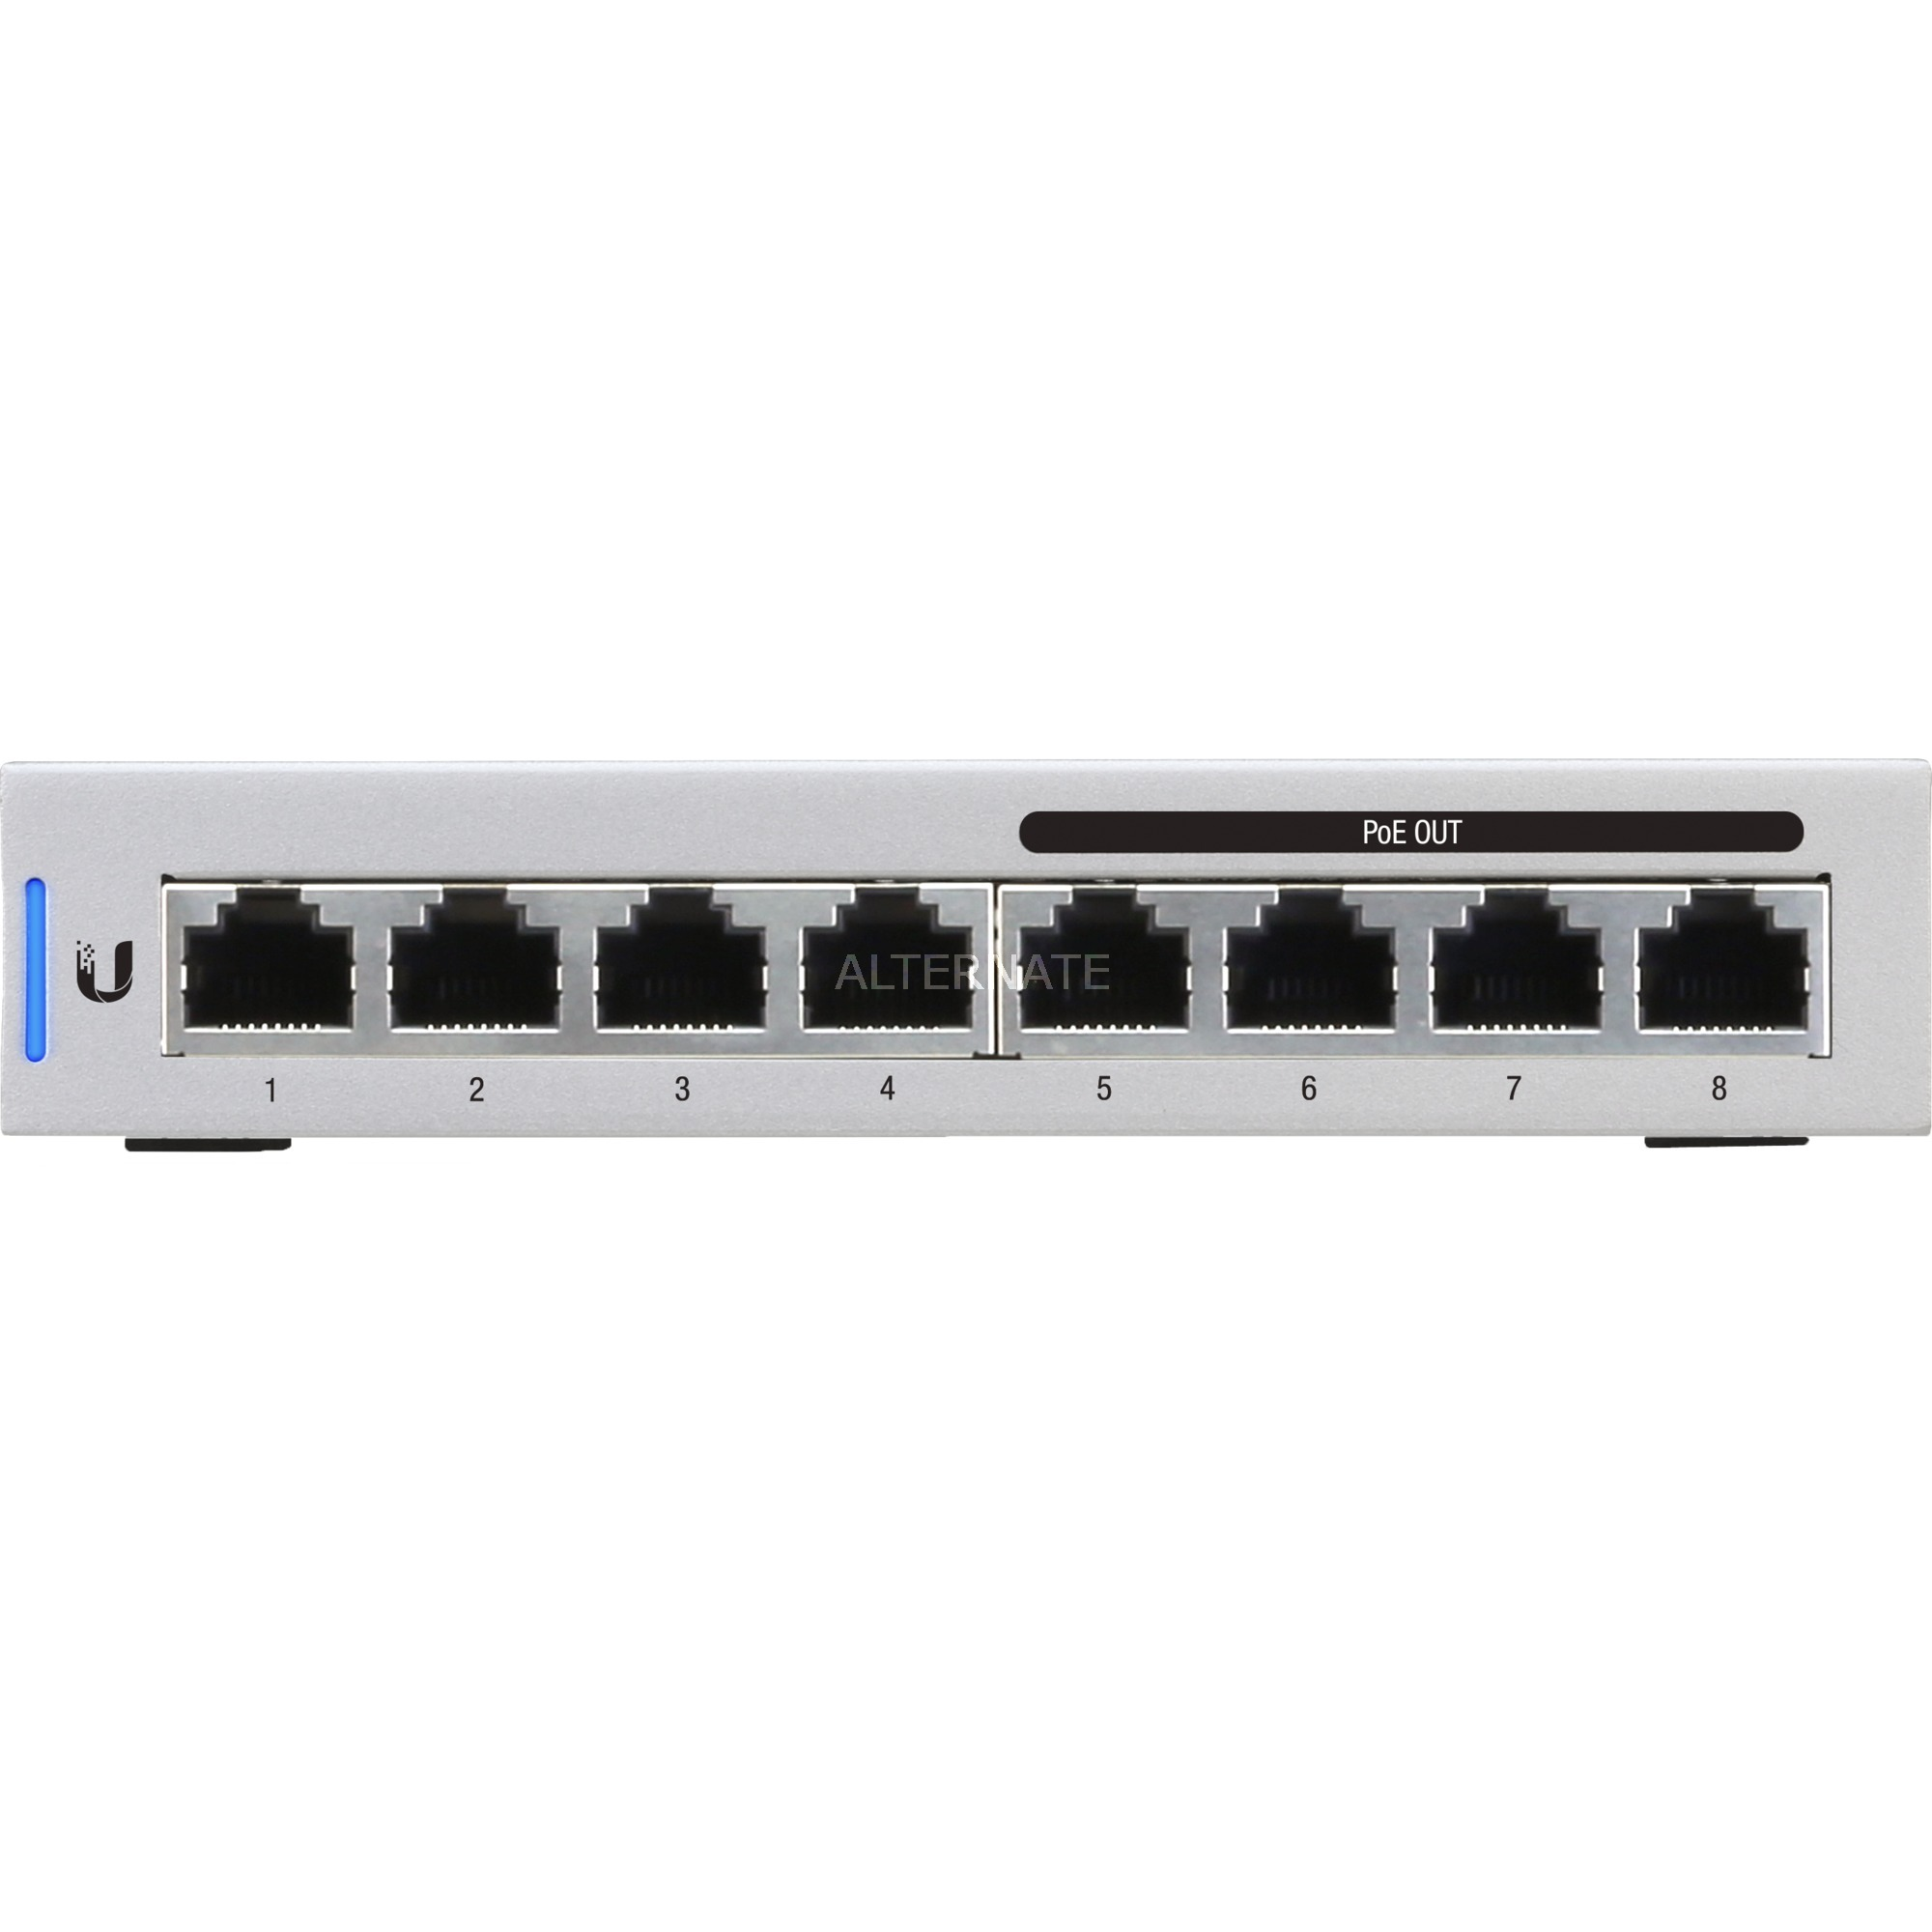 UniFi Switch 8 Managed network switch Gigabit Ethernet (10/100/1000) Connexion Ethernet, supportant l'alimentation via ce port (PoE) Gris, Commutateur